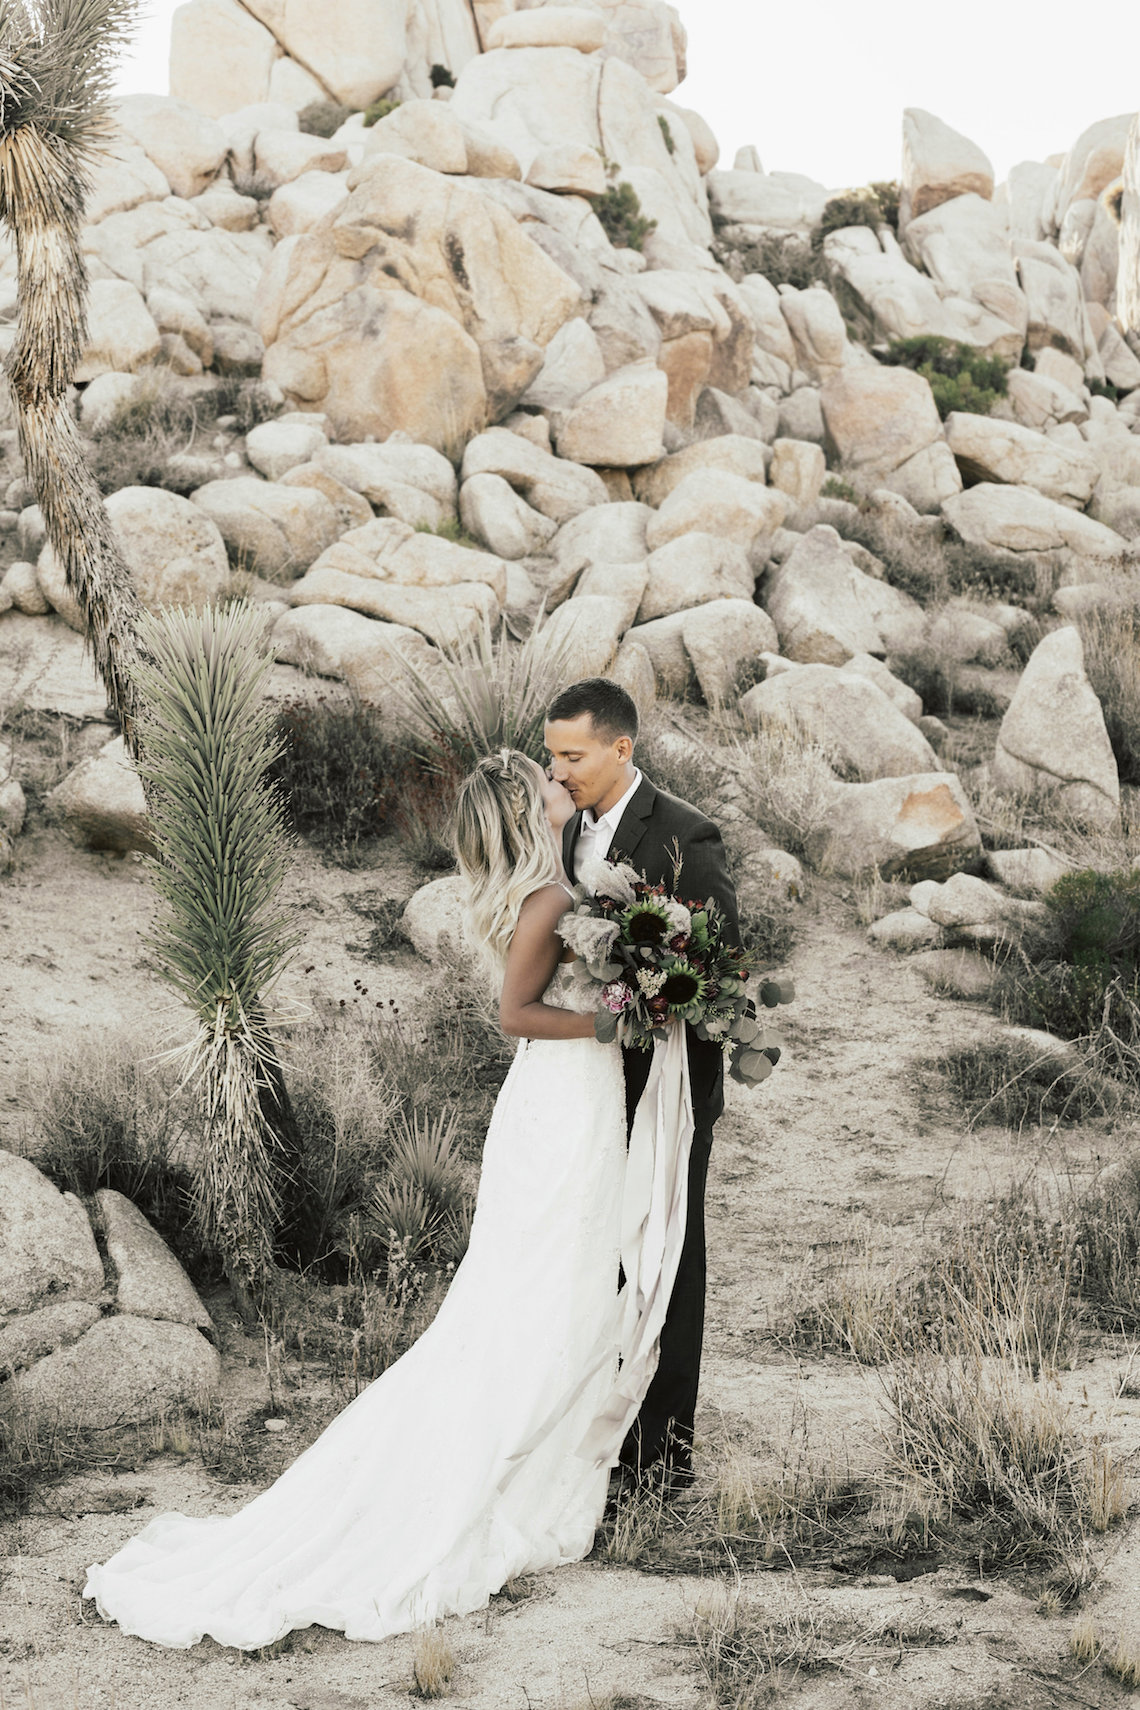 Boho Chic Elopement Inspiration with a Cool Teepee Altar | Maya Lora Photography 7